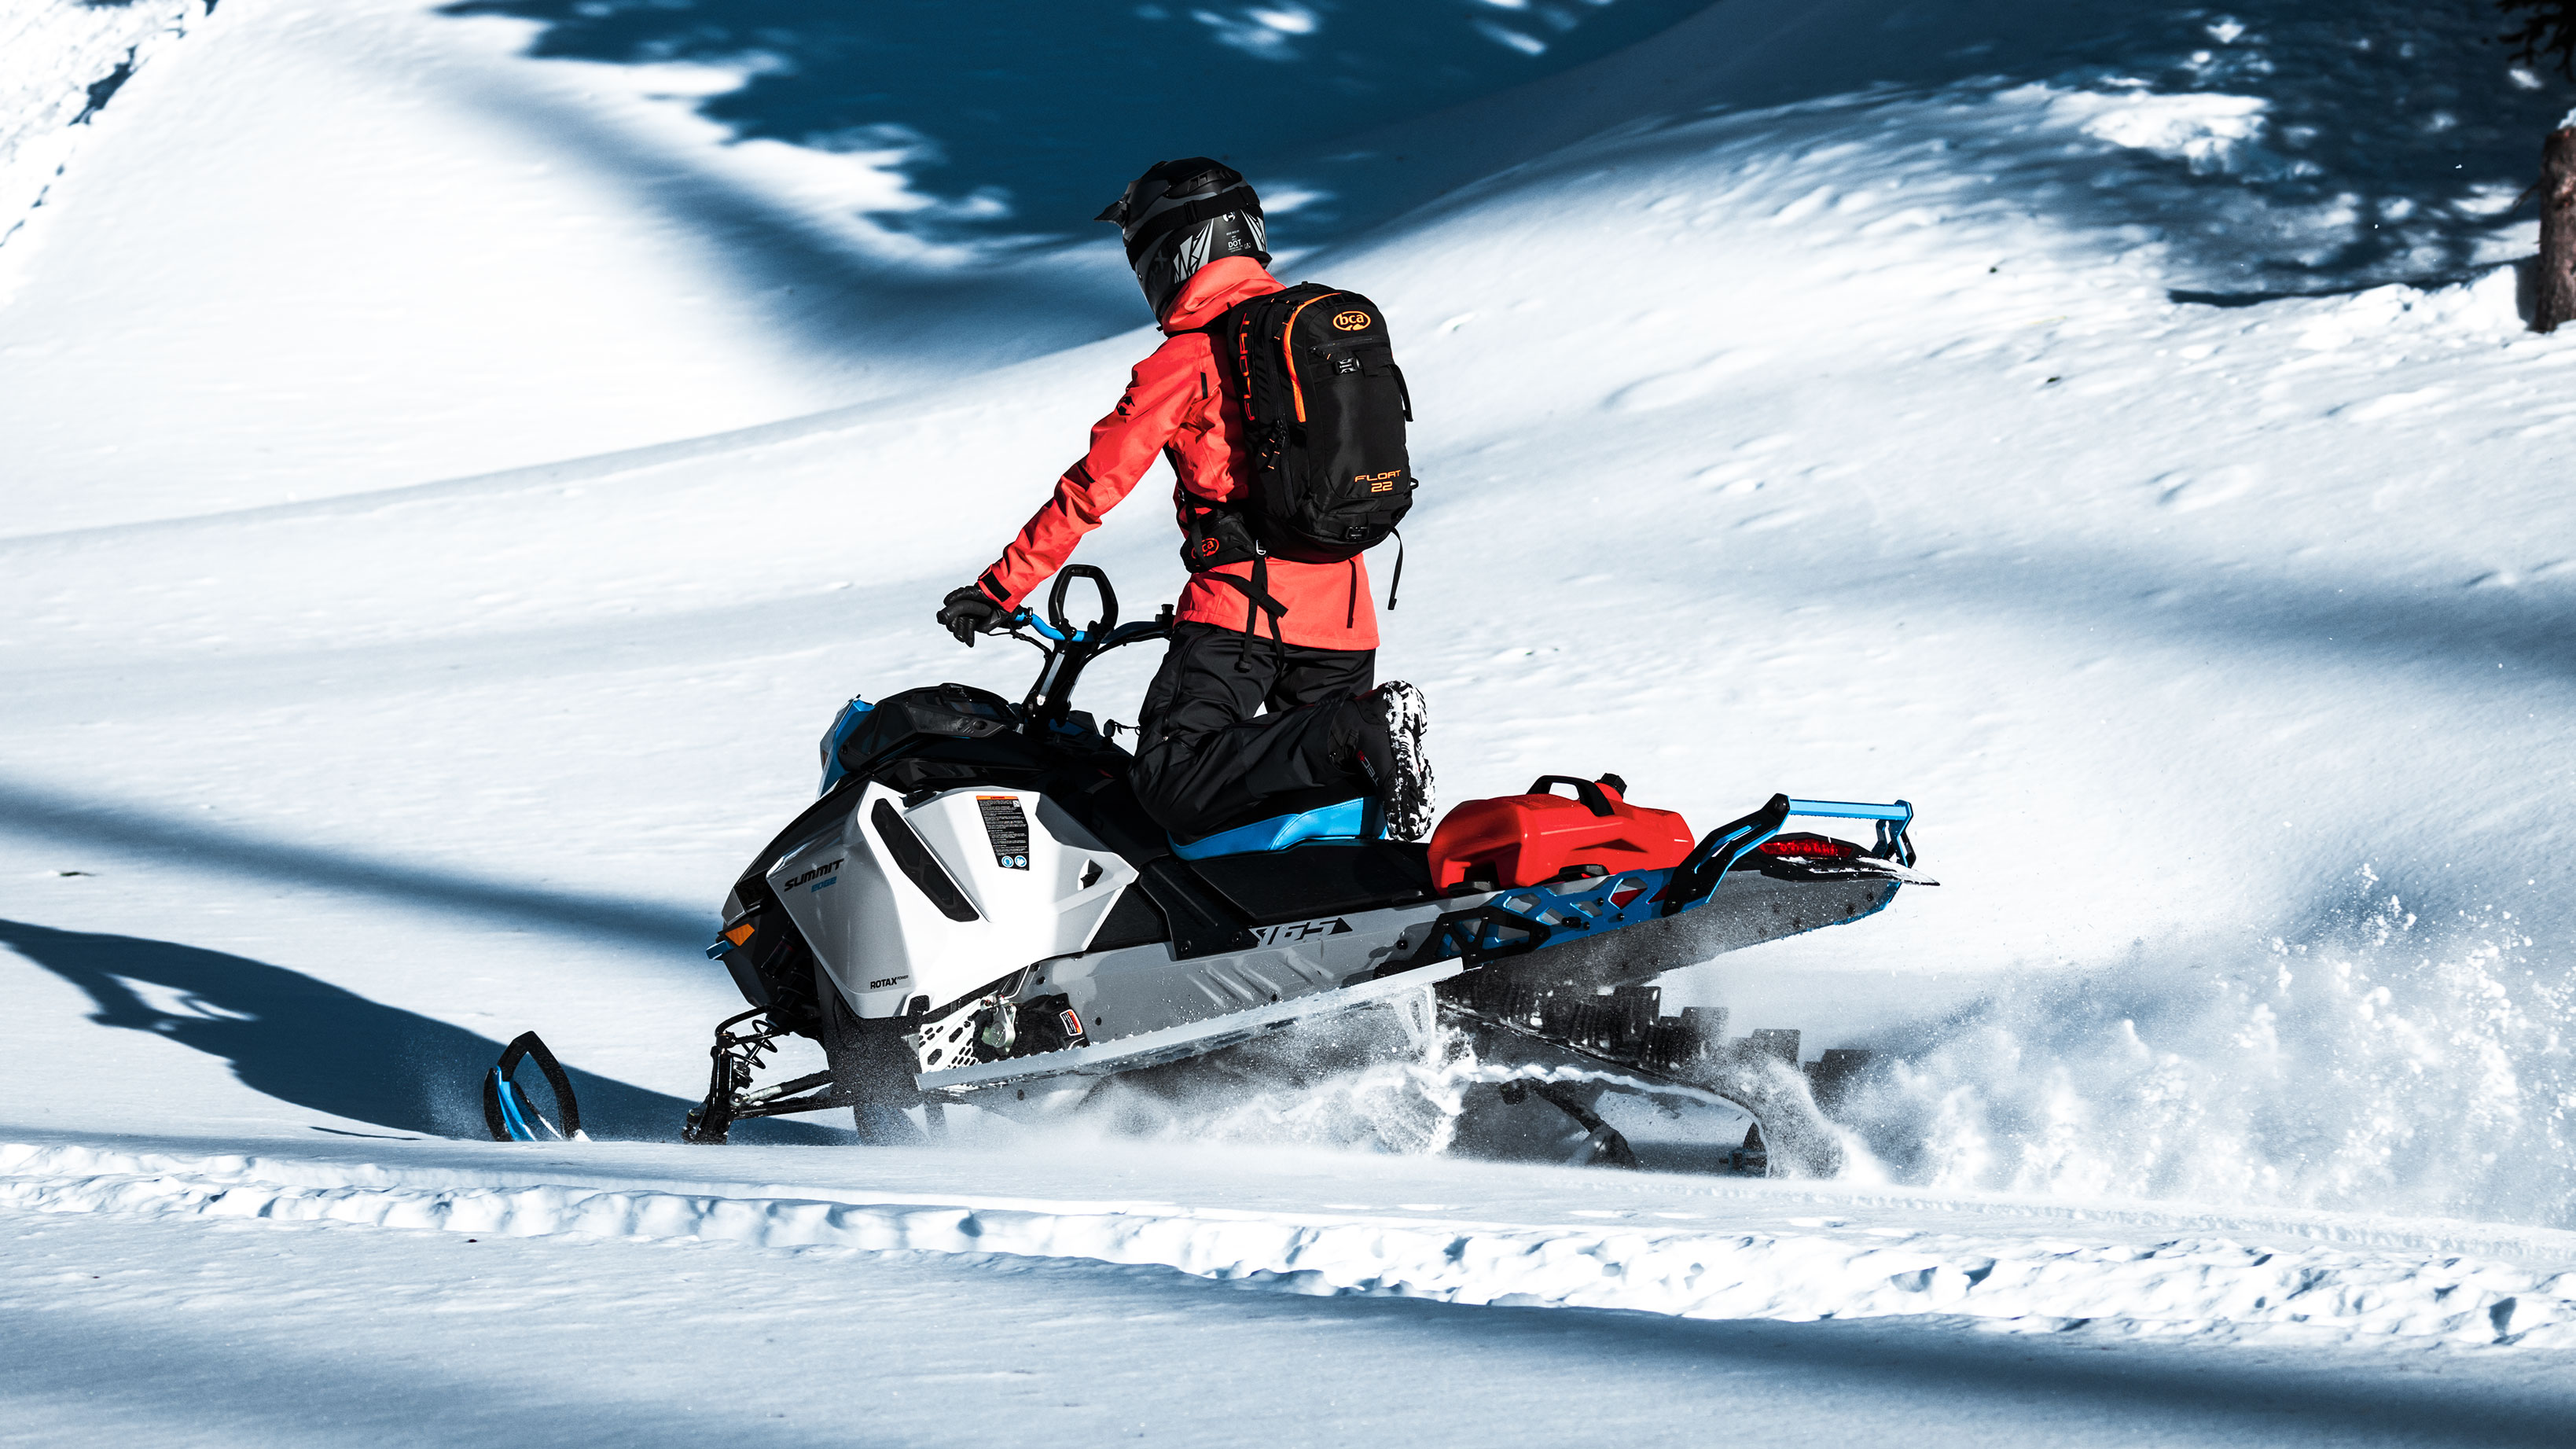 Man driving 2022 Ski-Doo Summit in a mountain ride